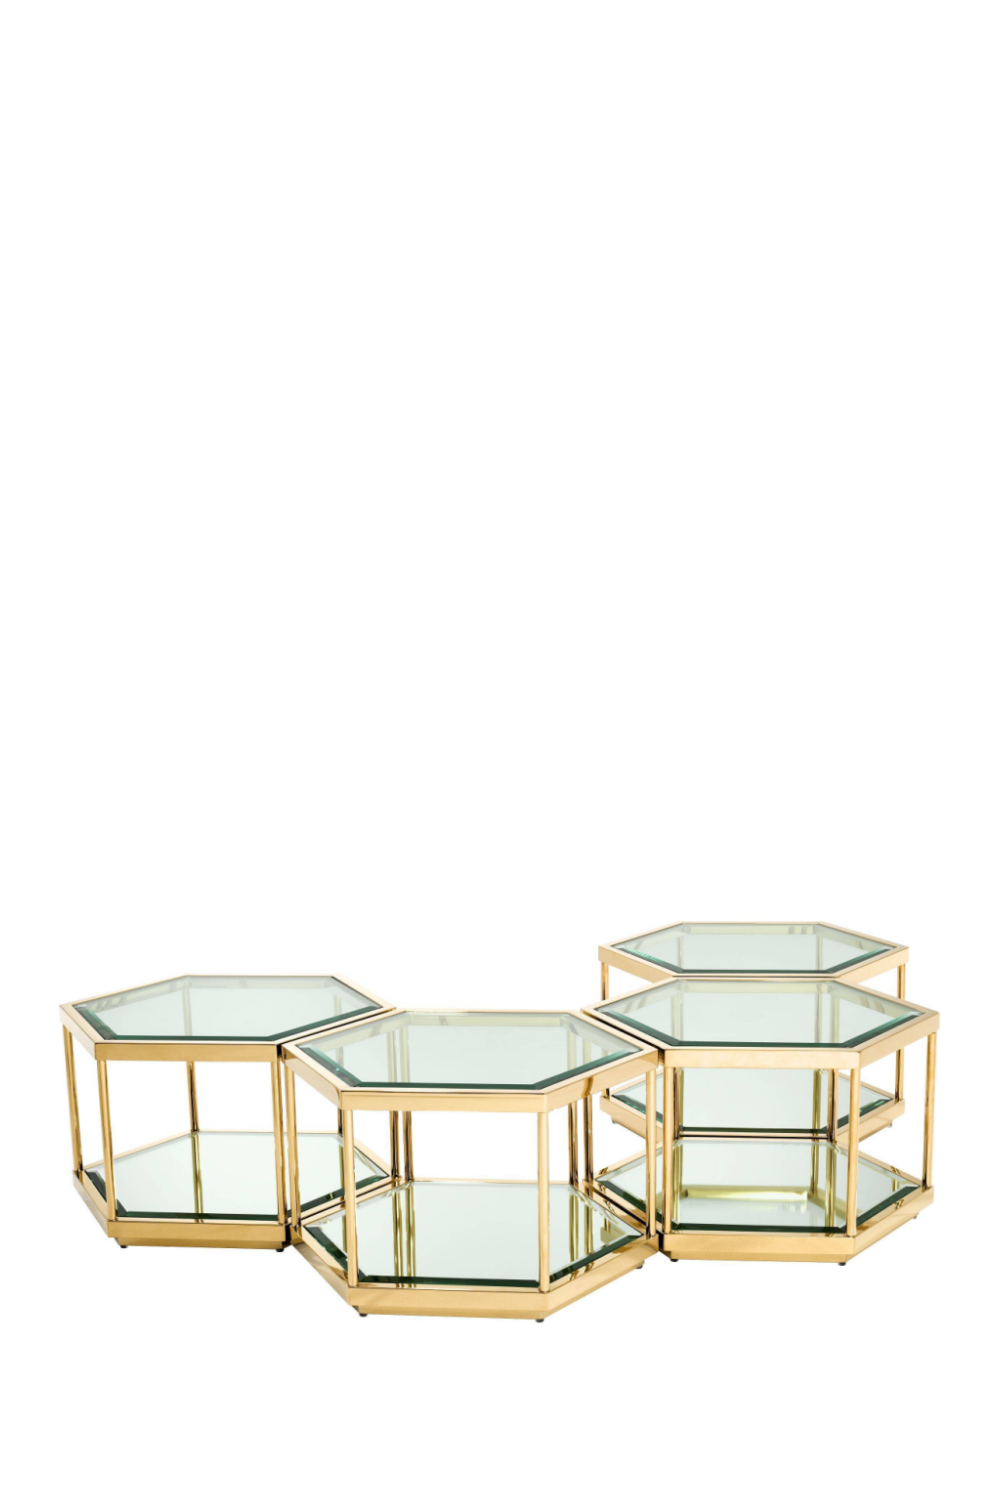 Gold Hexagonal Coffee Table Set | Eichholtz Sax